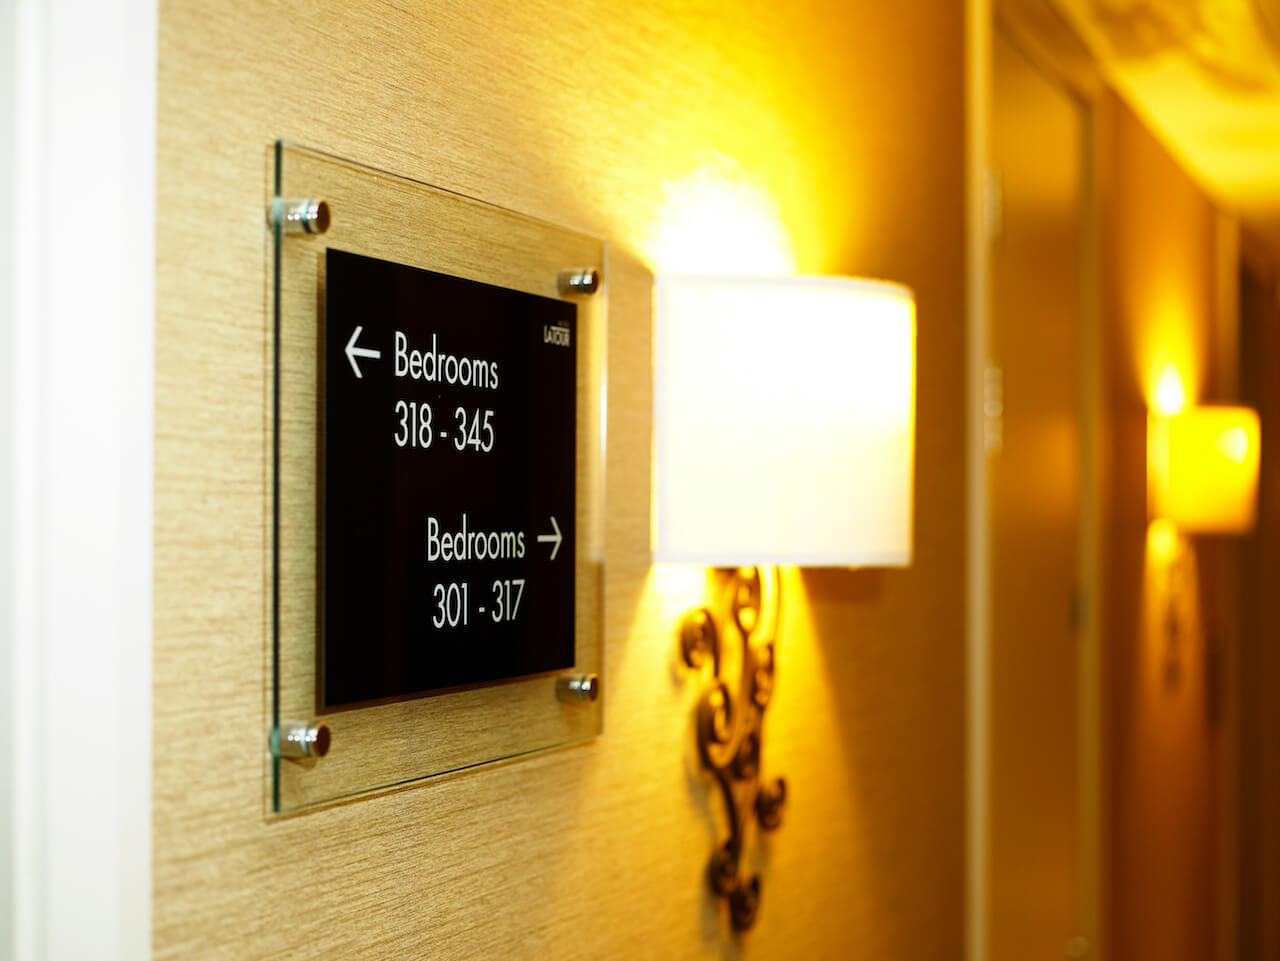 Signage for hotel bedrooms